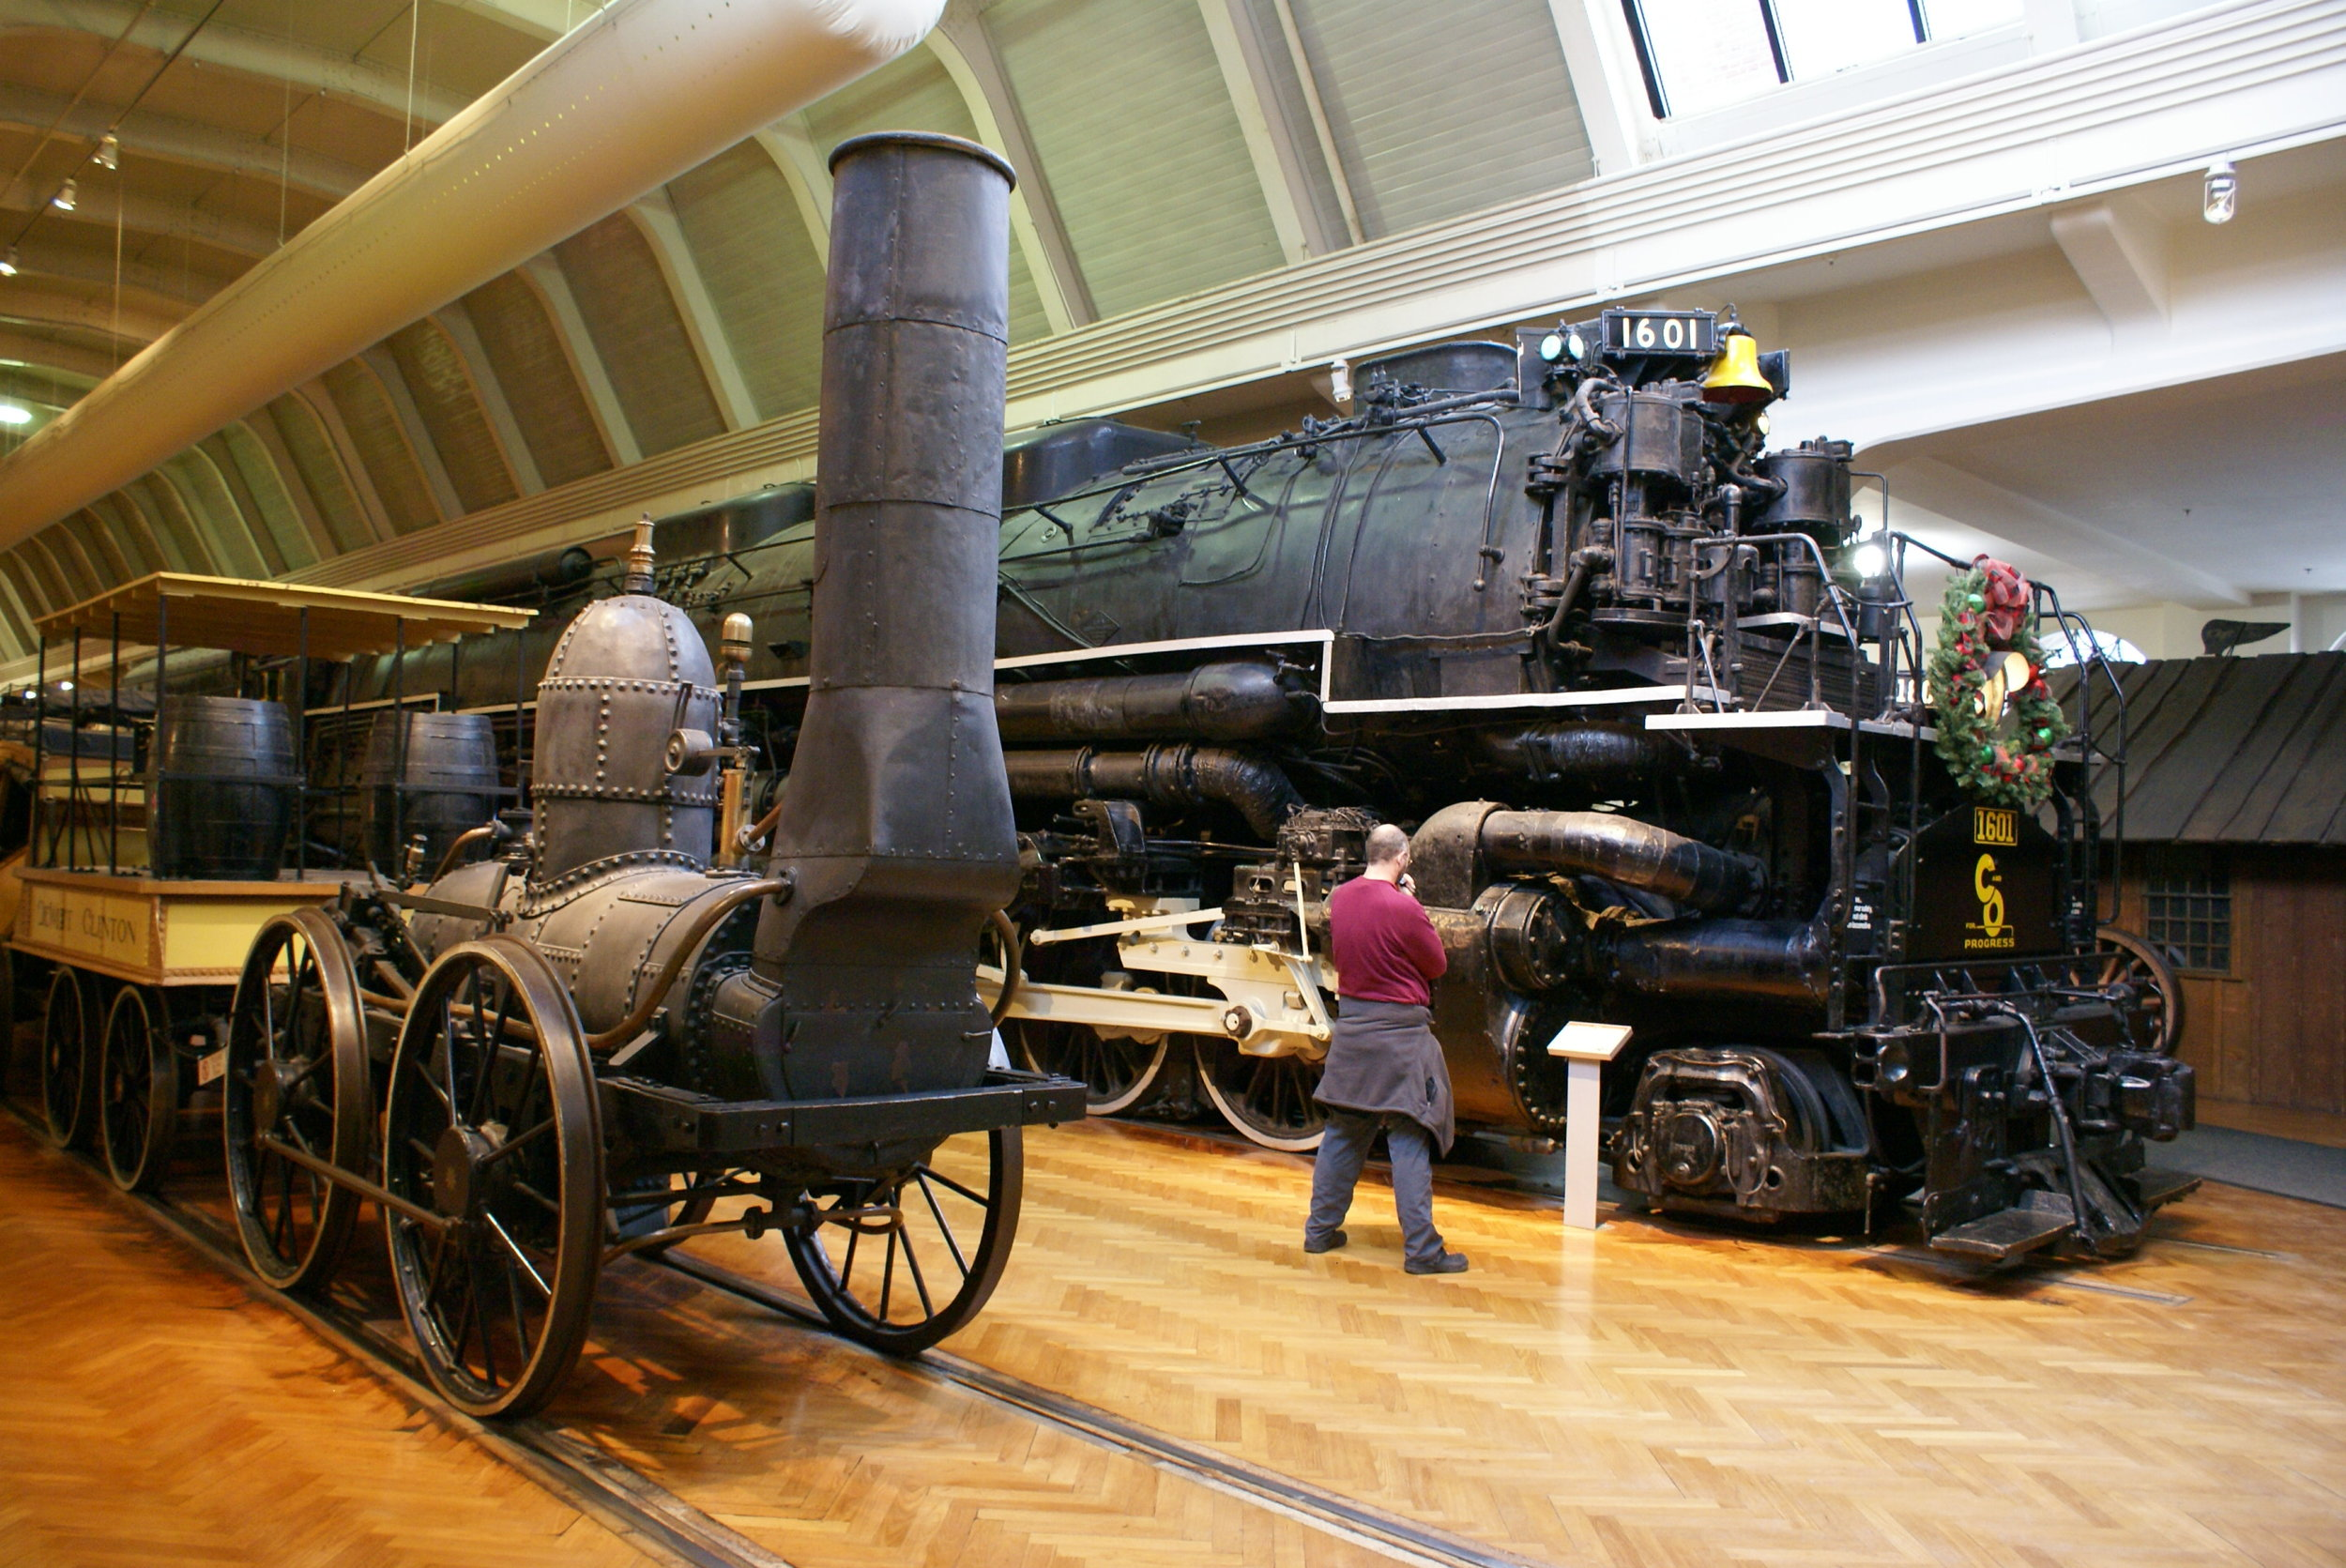 Trains Henry Ford museum.JPG